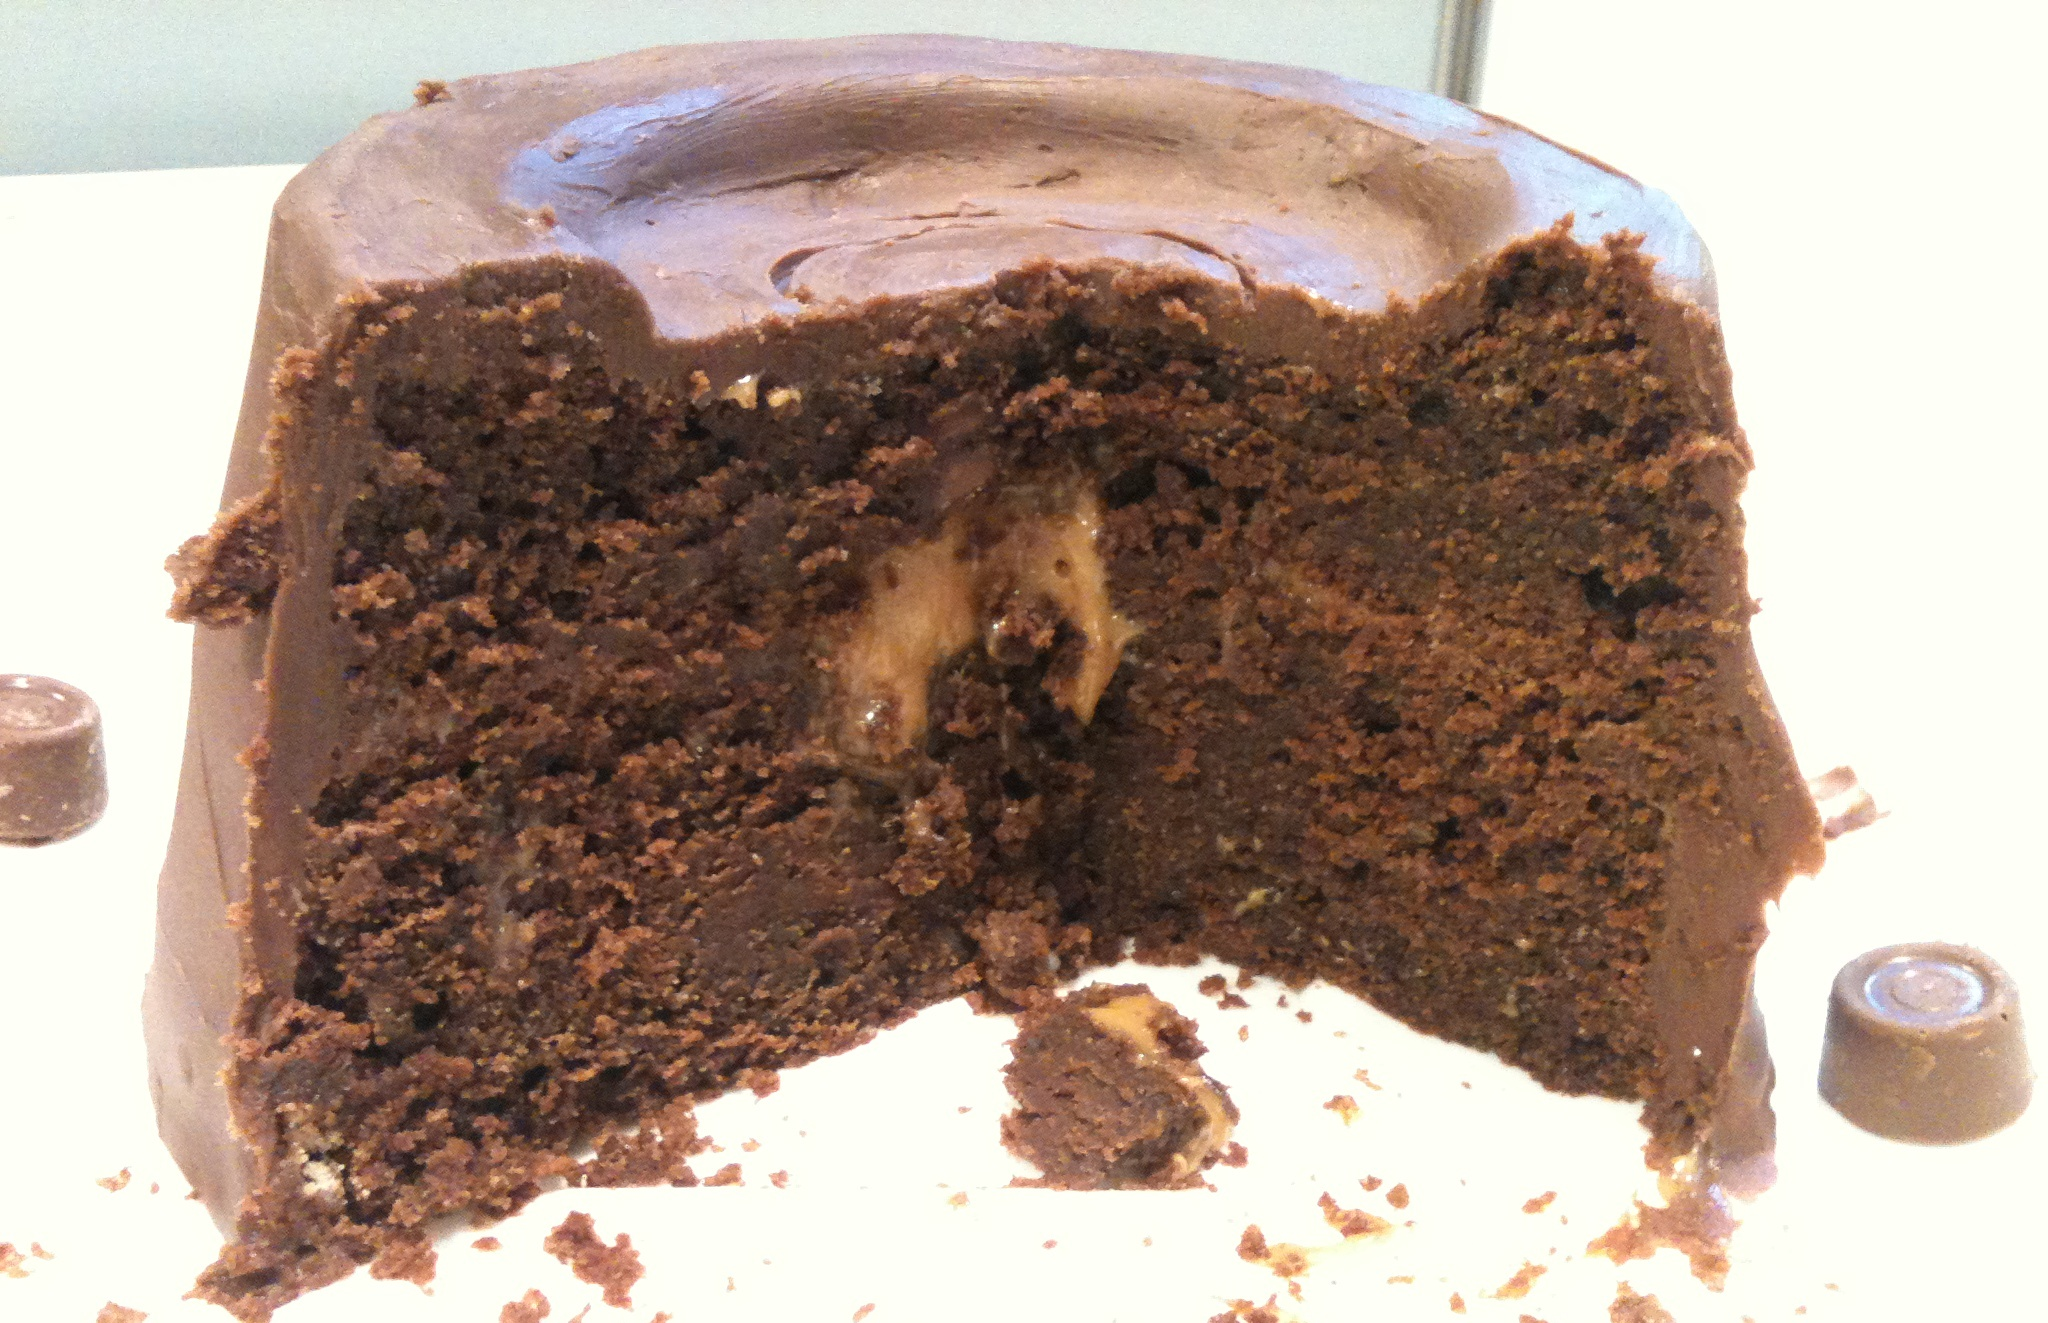 Large Chocolate Cake Images : Giant Rolo   Chocolate Brownie and Caramel Cake Gloverly ...